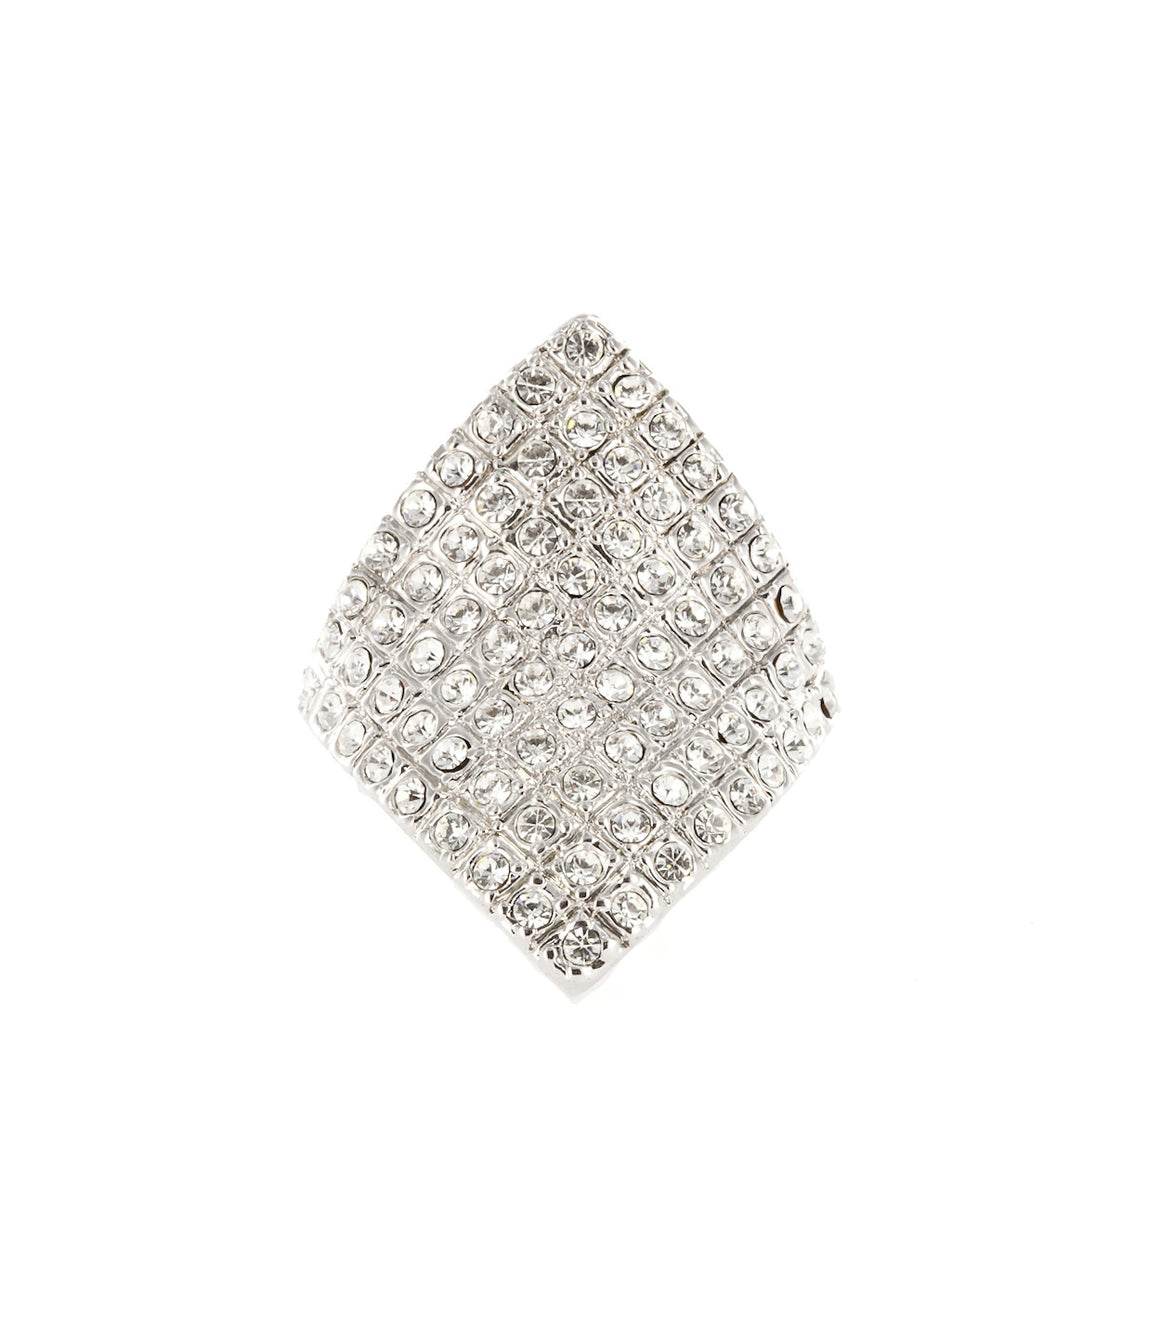 Ombre diamond-shape rhinestone cocktail ring.